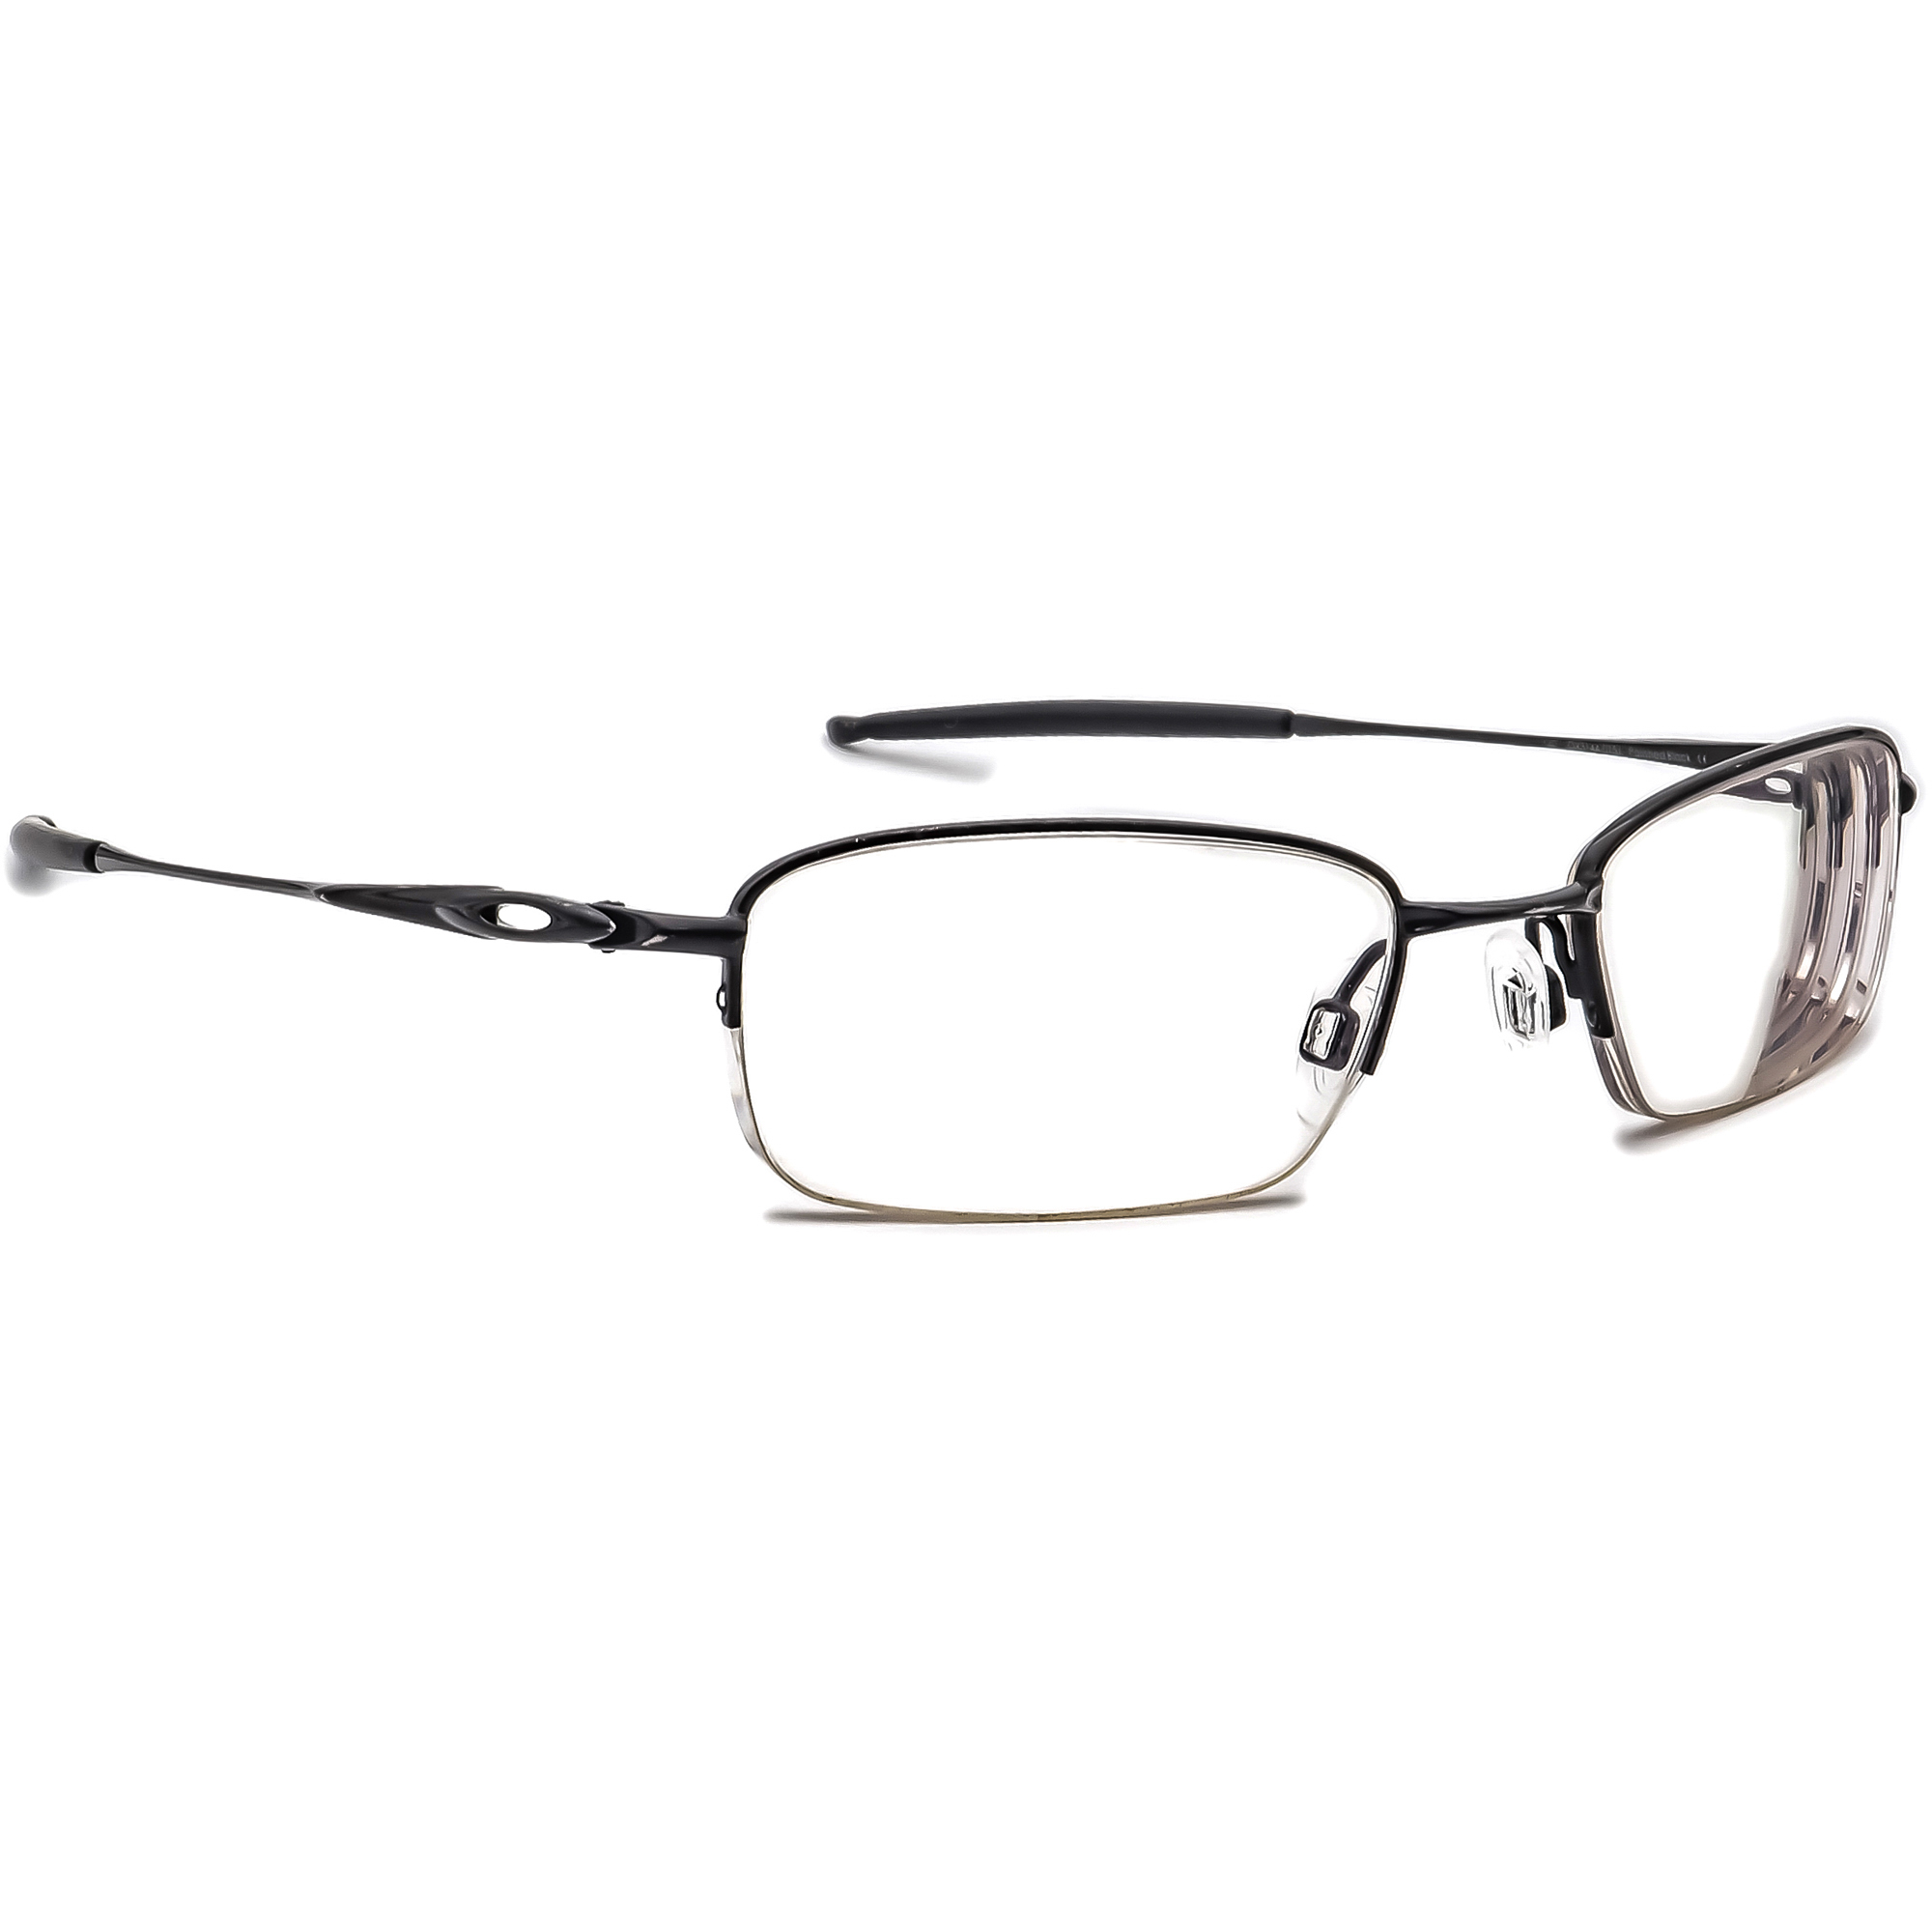 Oakley OX3144-0151 Spoke 0.5 Eyeglasses